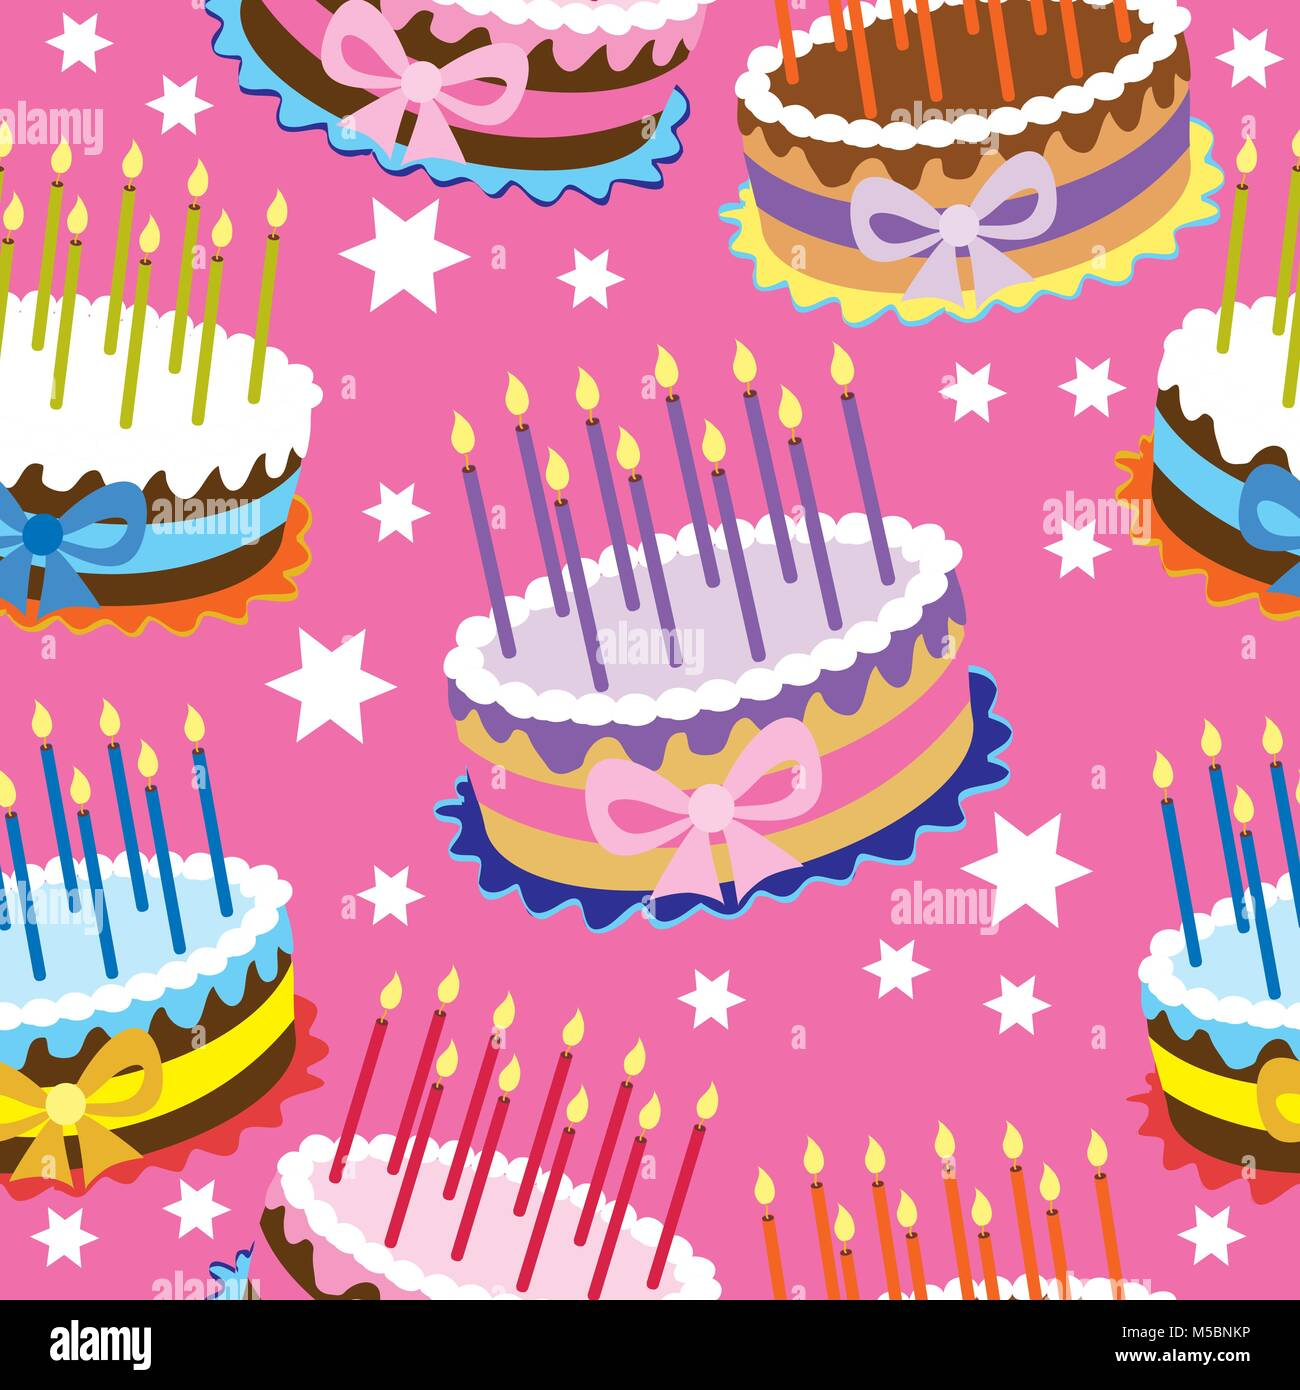 Vintage Birthday Cake Stock Vector Images Alamy